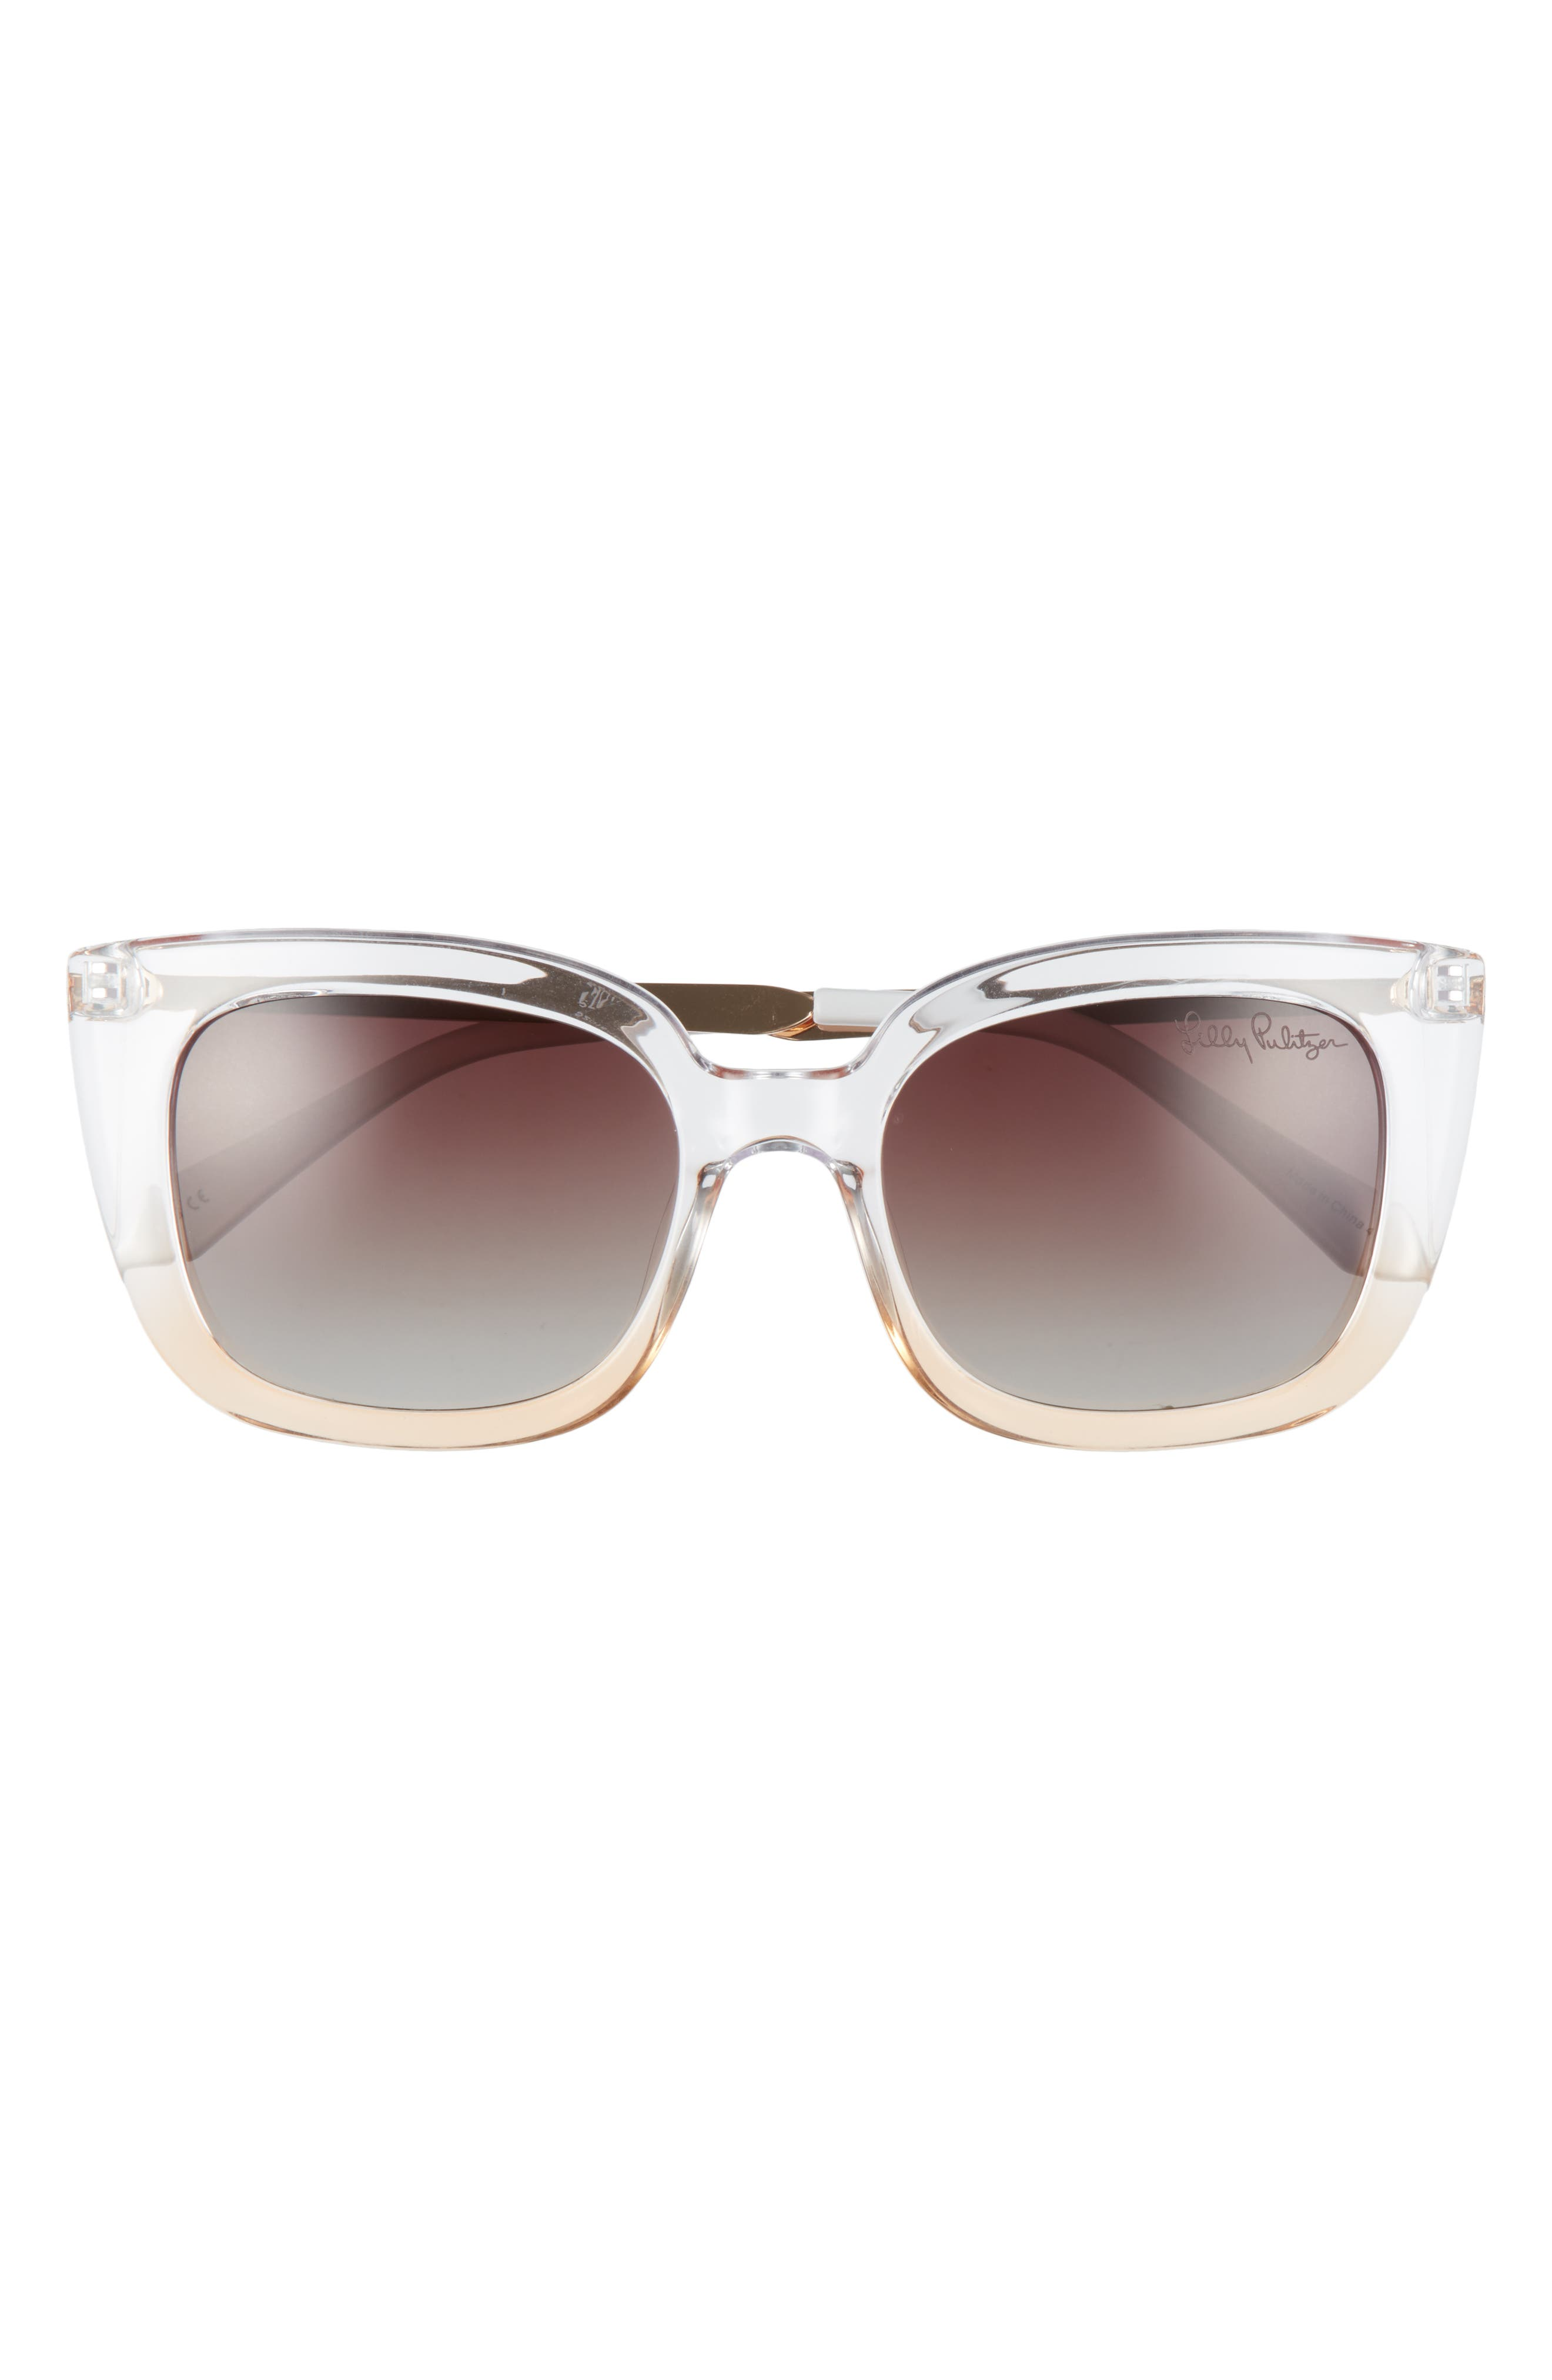 Exaggerated cat-eye frames heighten the retro appeal of sunglasses fitted with TAC polarized lenses that are scratch-resistant and glare-reducing. Style Name: Lilly Pulitzer Circe 52mm Polarized Cat Eye Sunglasses. Style Number: 6104396. Available in stores.